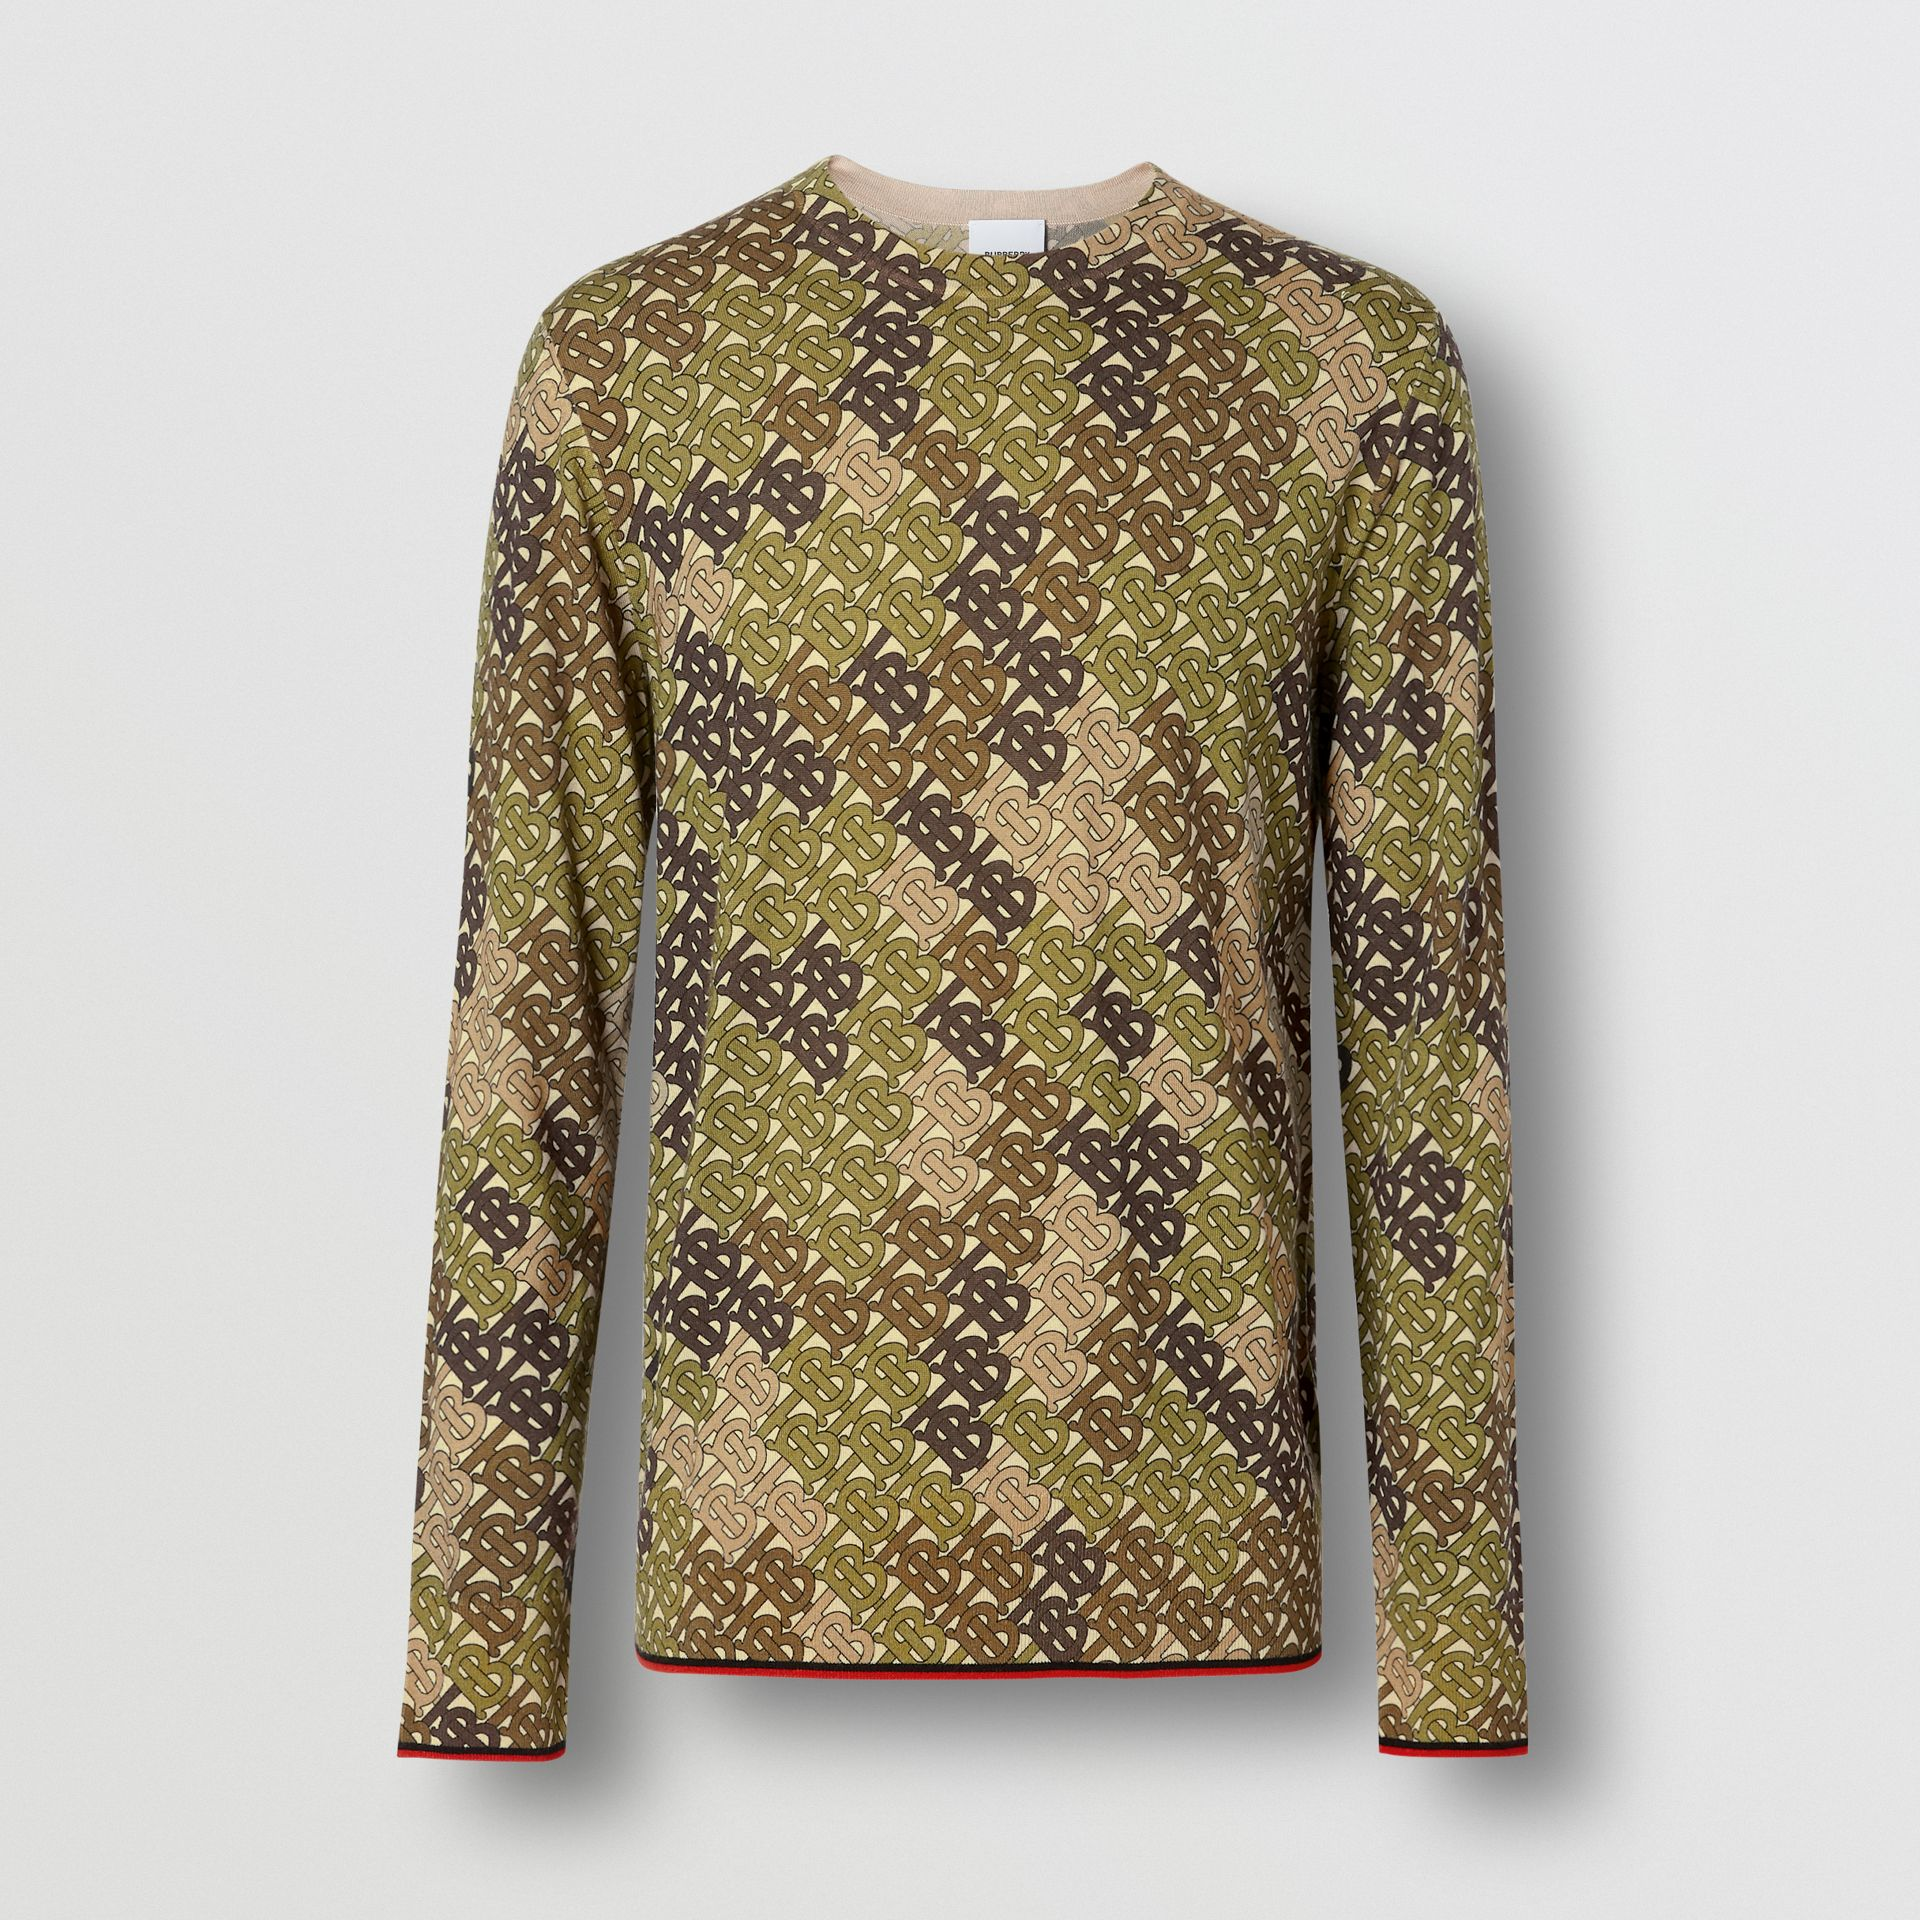 Monogram Print Merino Wool Sweater in Khaki - Men | Burberry - gallery image 3